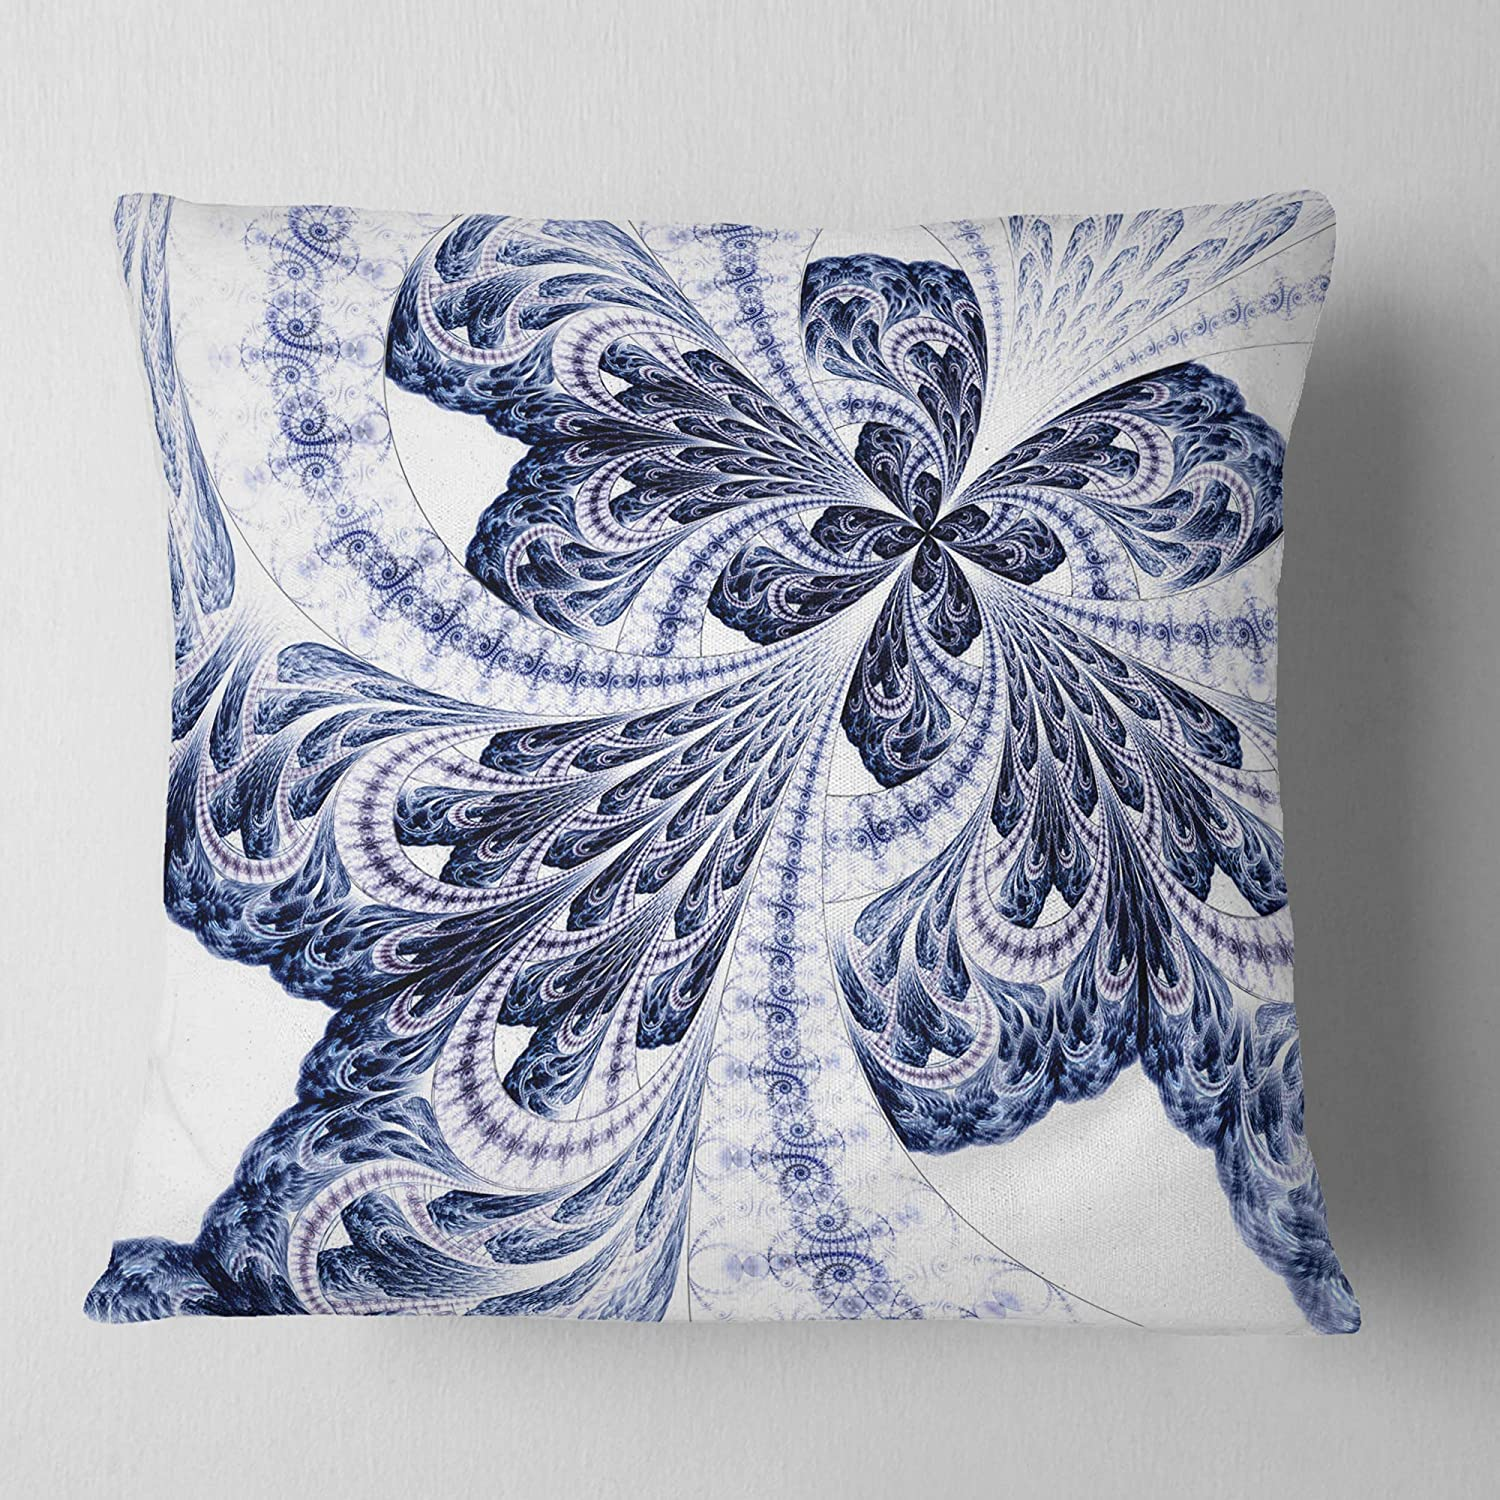 Insert Printed On Both Side x 18 in Sofa Throw Pillow 18 in in Designart CU12051-18-18 Symmetrical Tight Blue Fractal Flower Floral Cushion Cover for Living Room